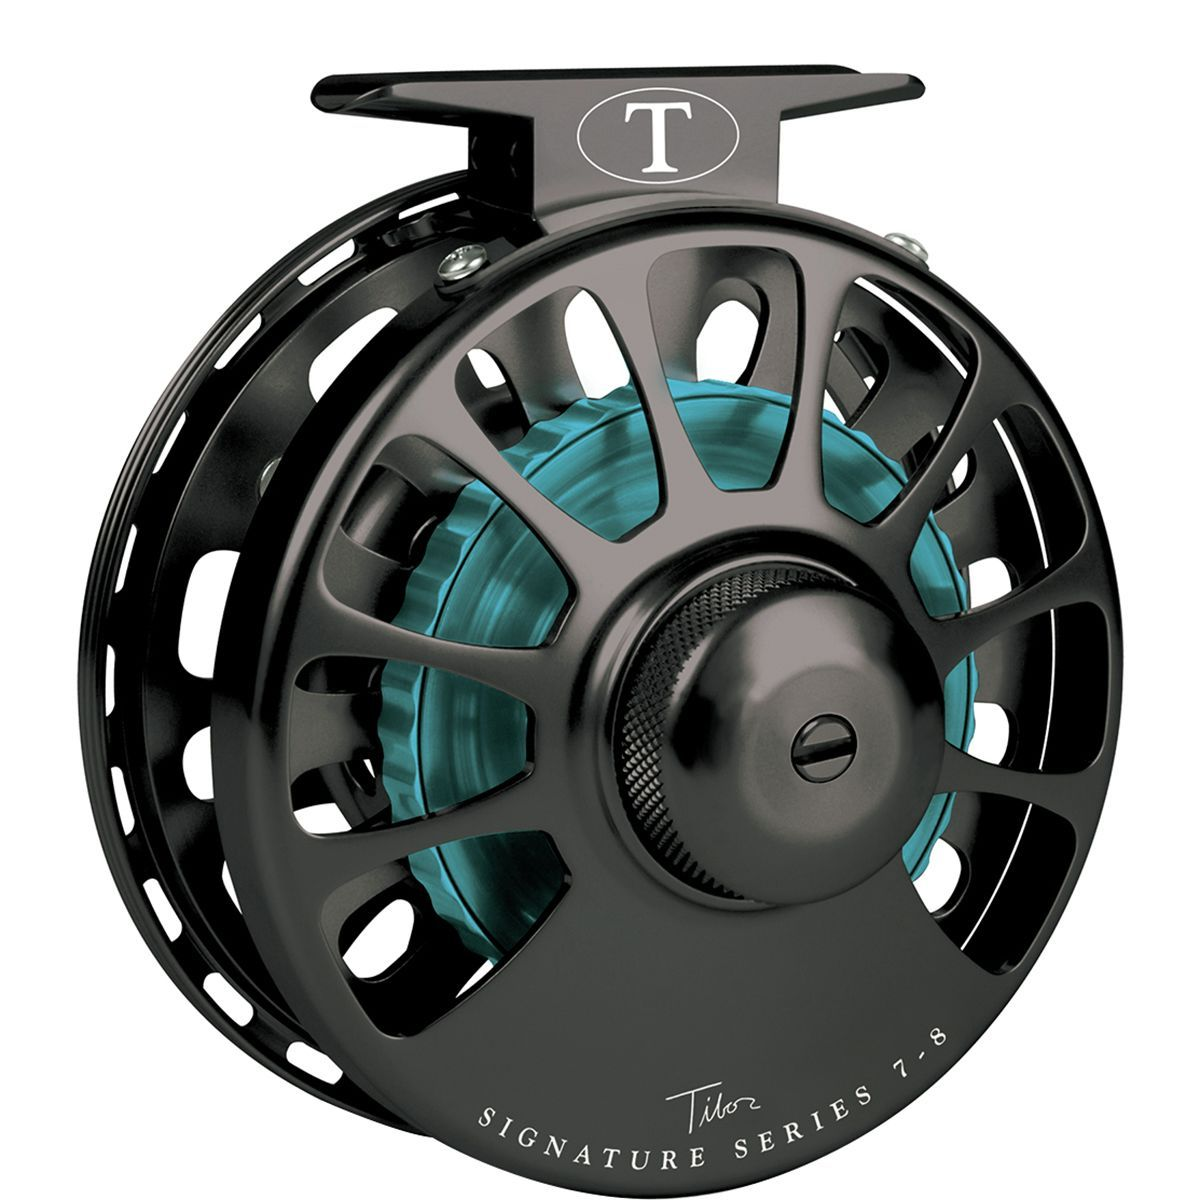 Signature 7 8 Fly Reel In 2021 Fly Reels Fishing Reels Fly Fishing